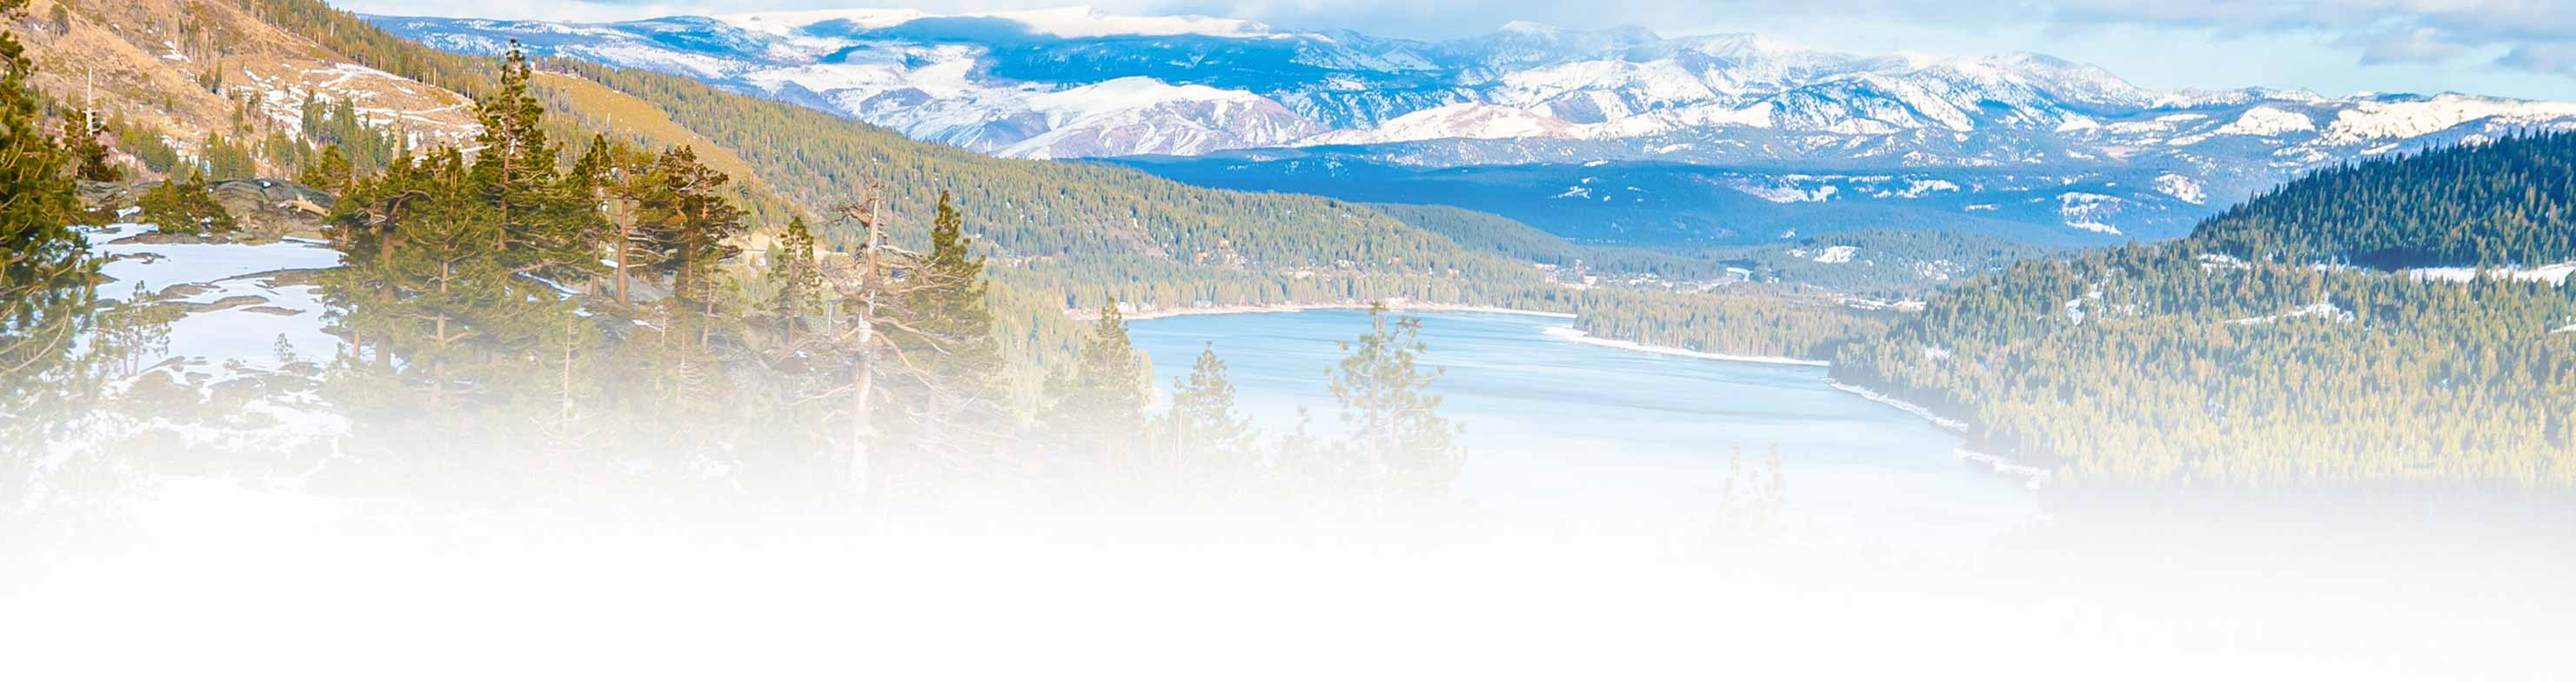 Lake Tahoe image for services